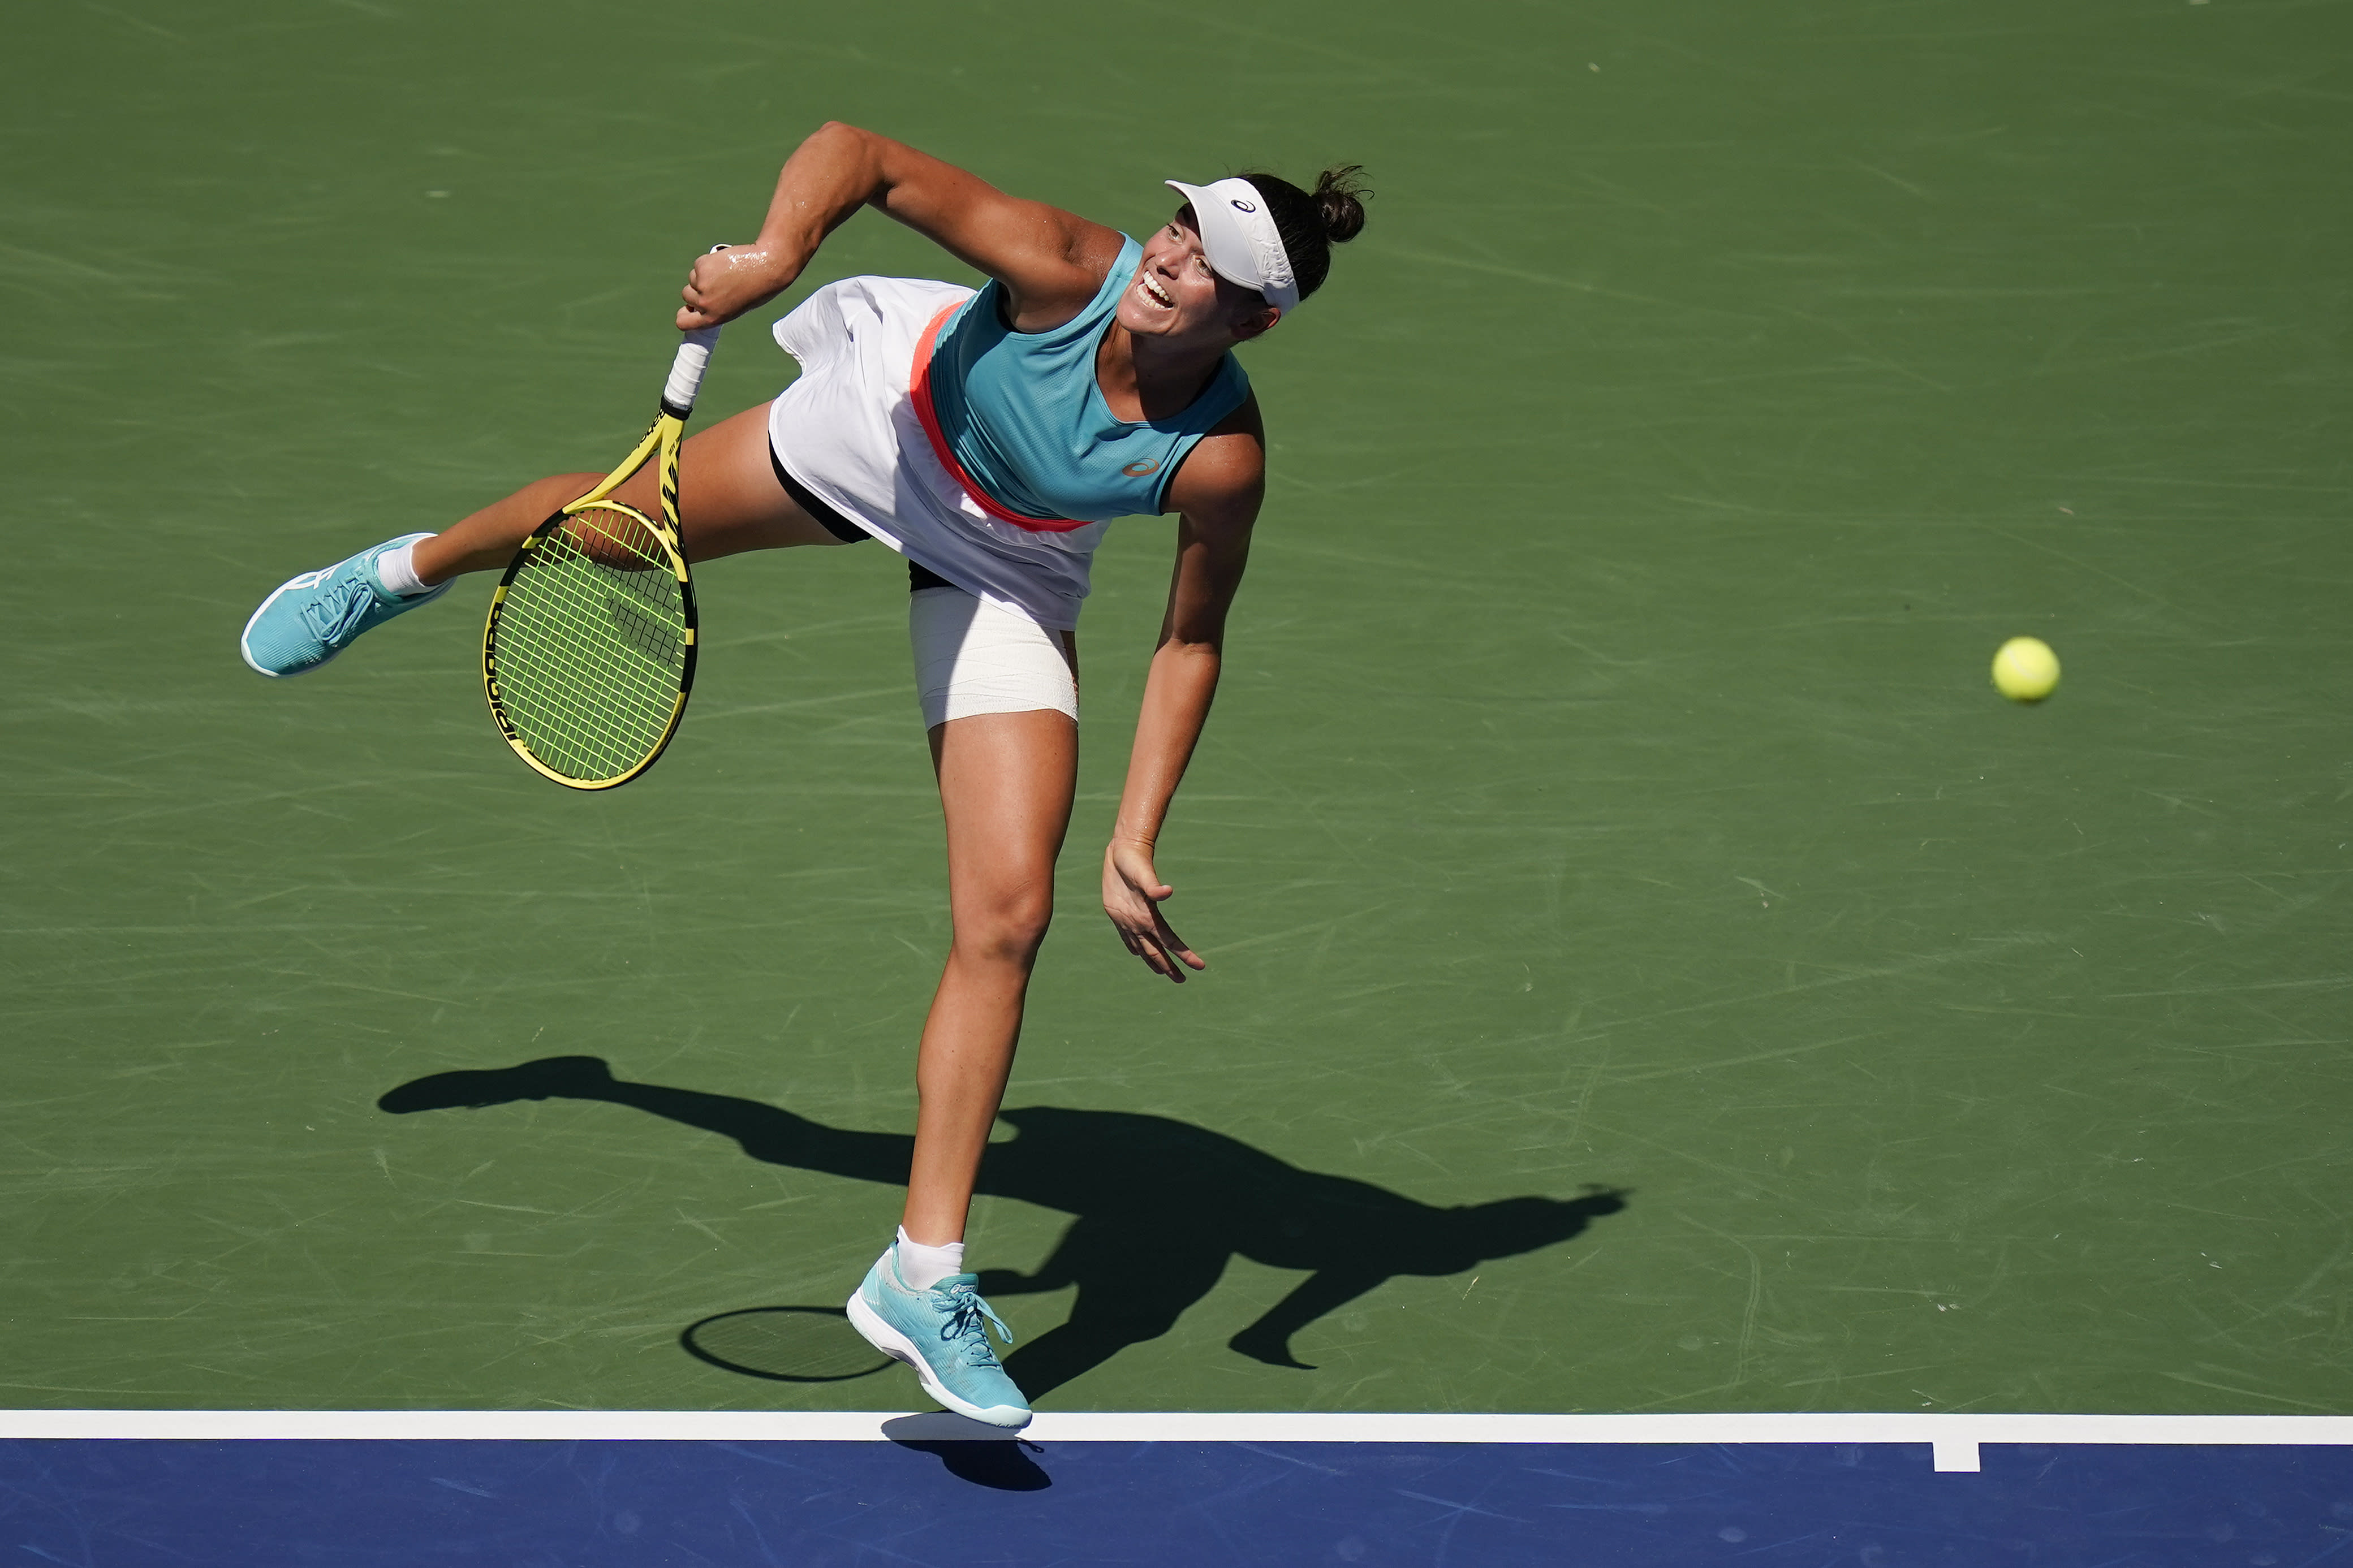 Jennifer Brady, of the United States, serves to Yulia Putintseva, of Kazakhstan, during the quarterfinals of the US Open tennis championships, Tuesday, Sept. 8, 2020, in New York. (AP Photo/Seth Wenig)